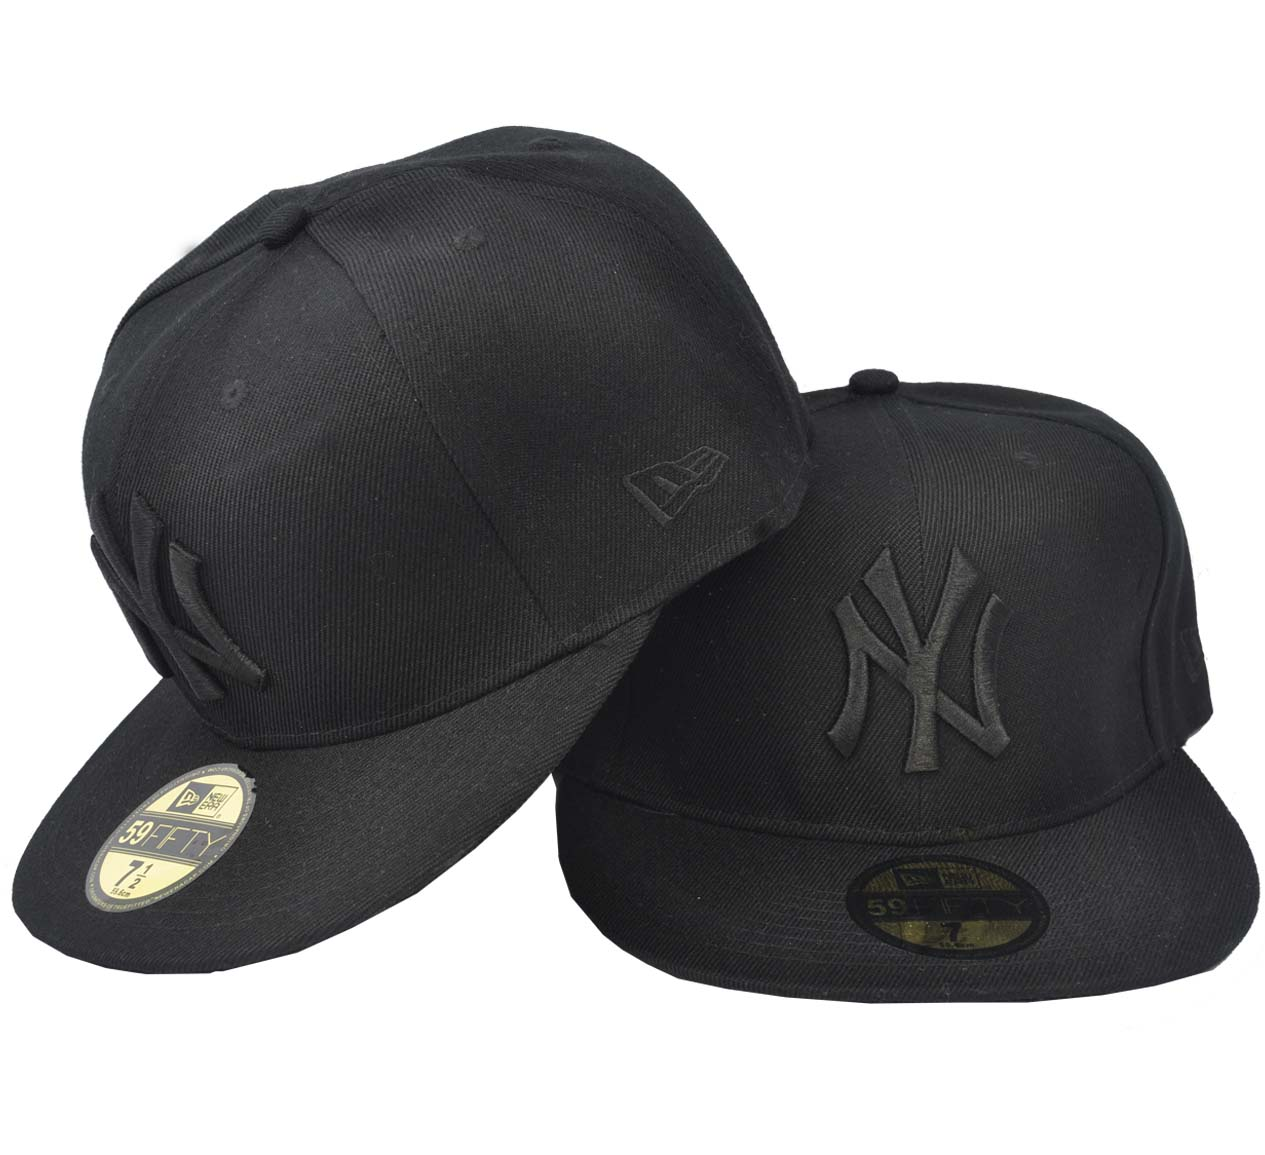 homme casquette new era ny casquette. Black Bedroom Furniture Sets. Home Design Ideas